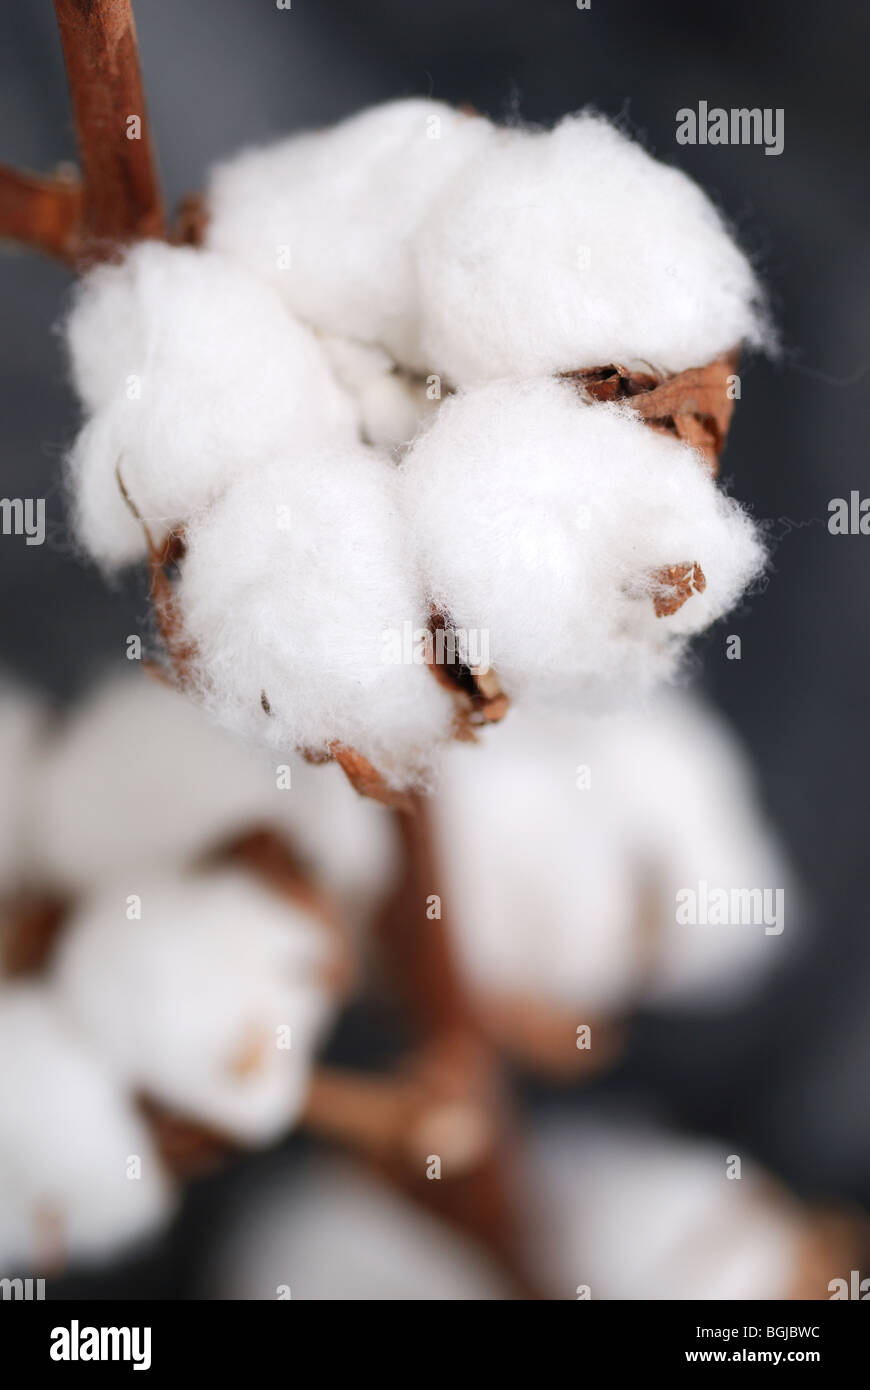 CLOSE UP OF COTTON BOLL STEMS - Stock Image